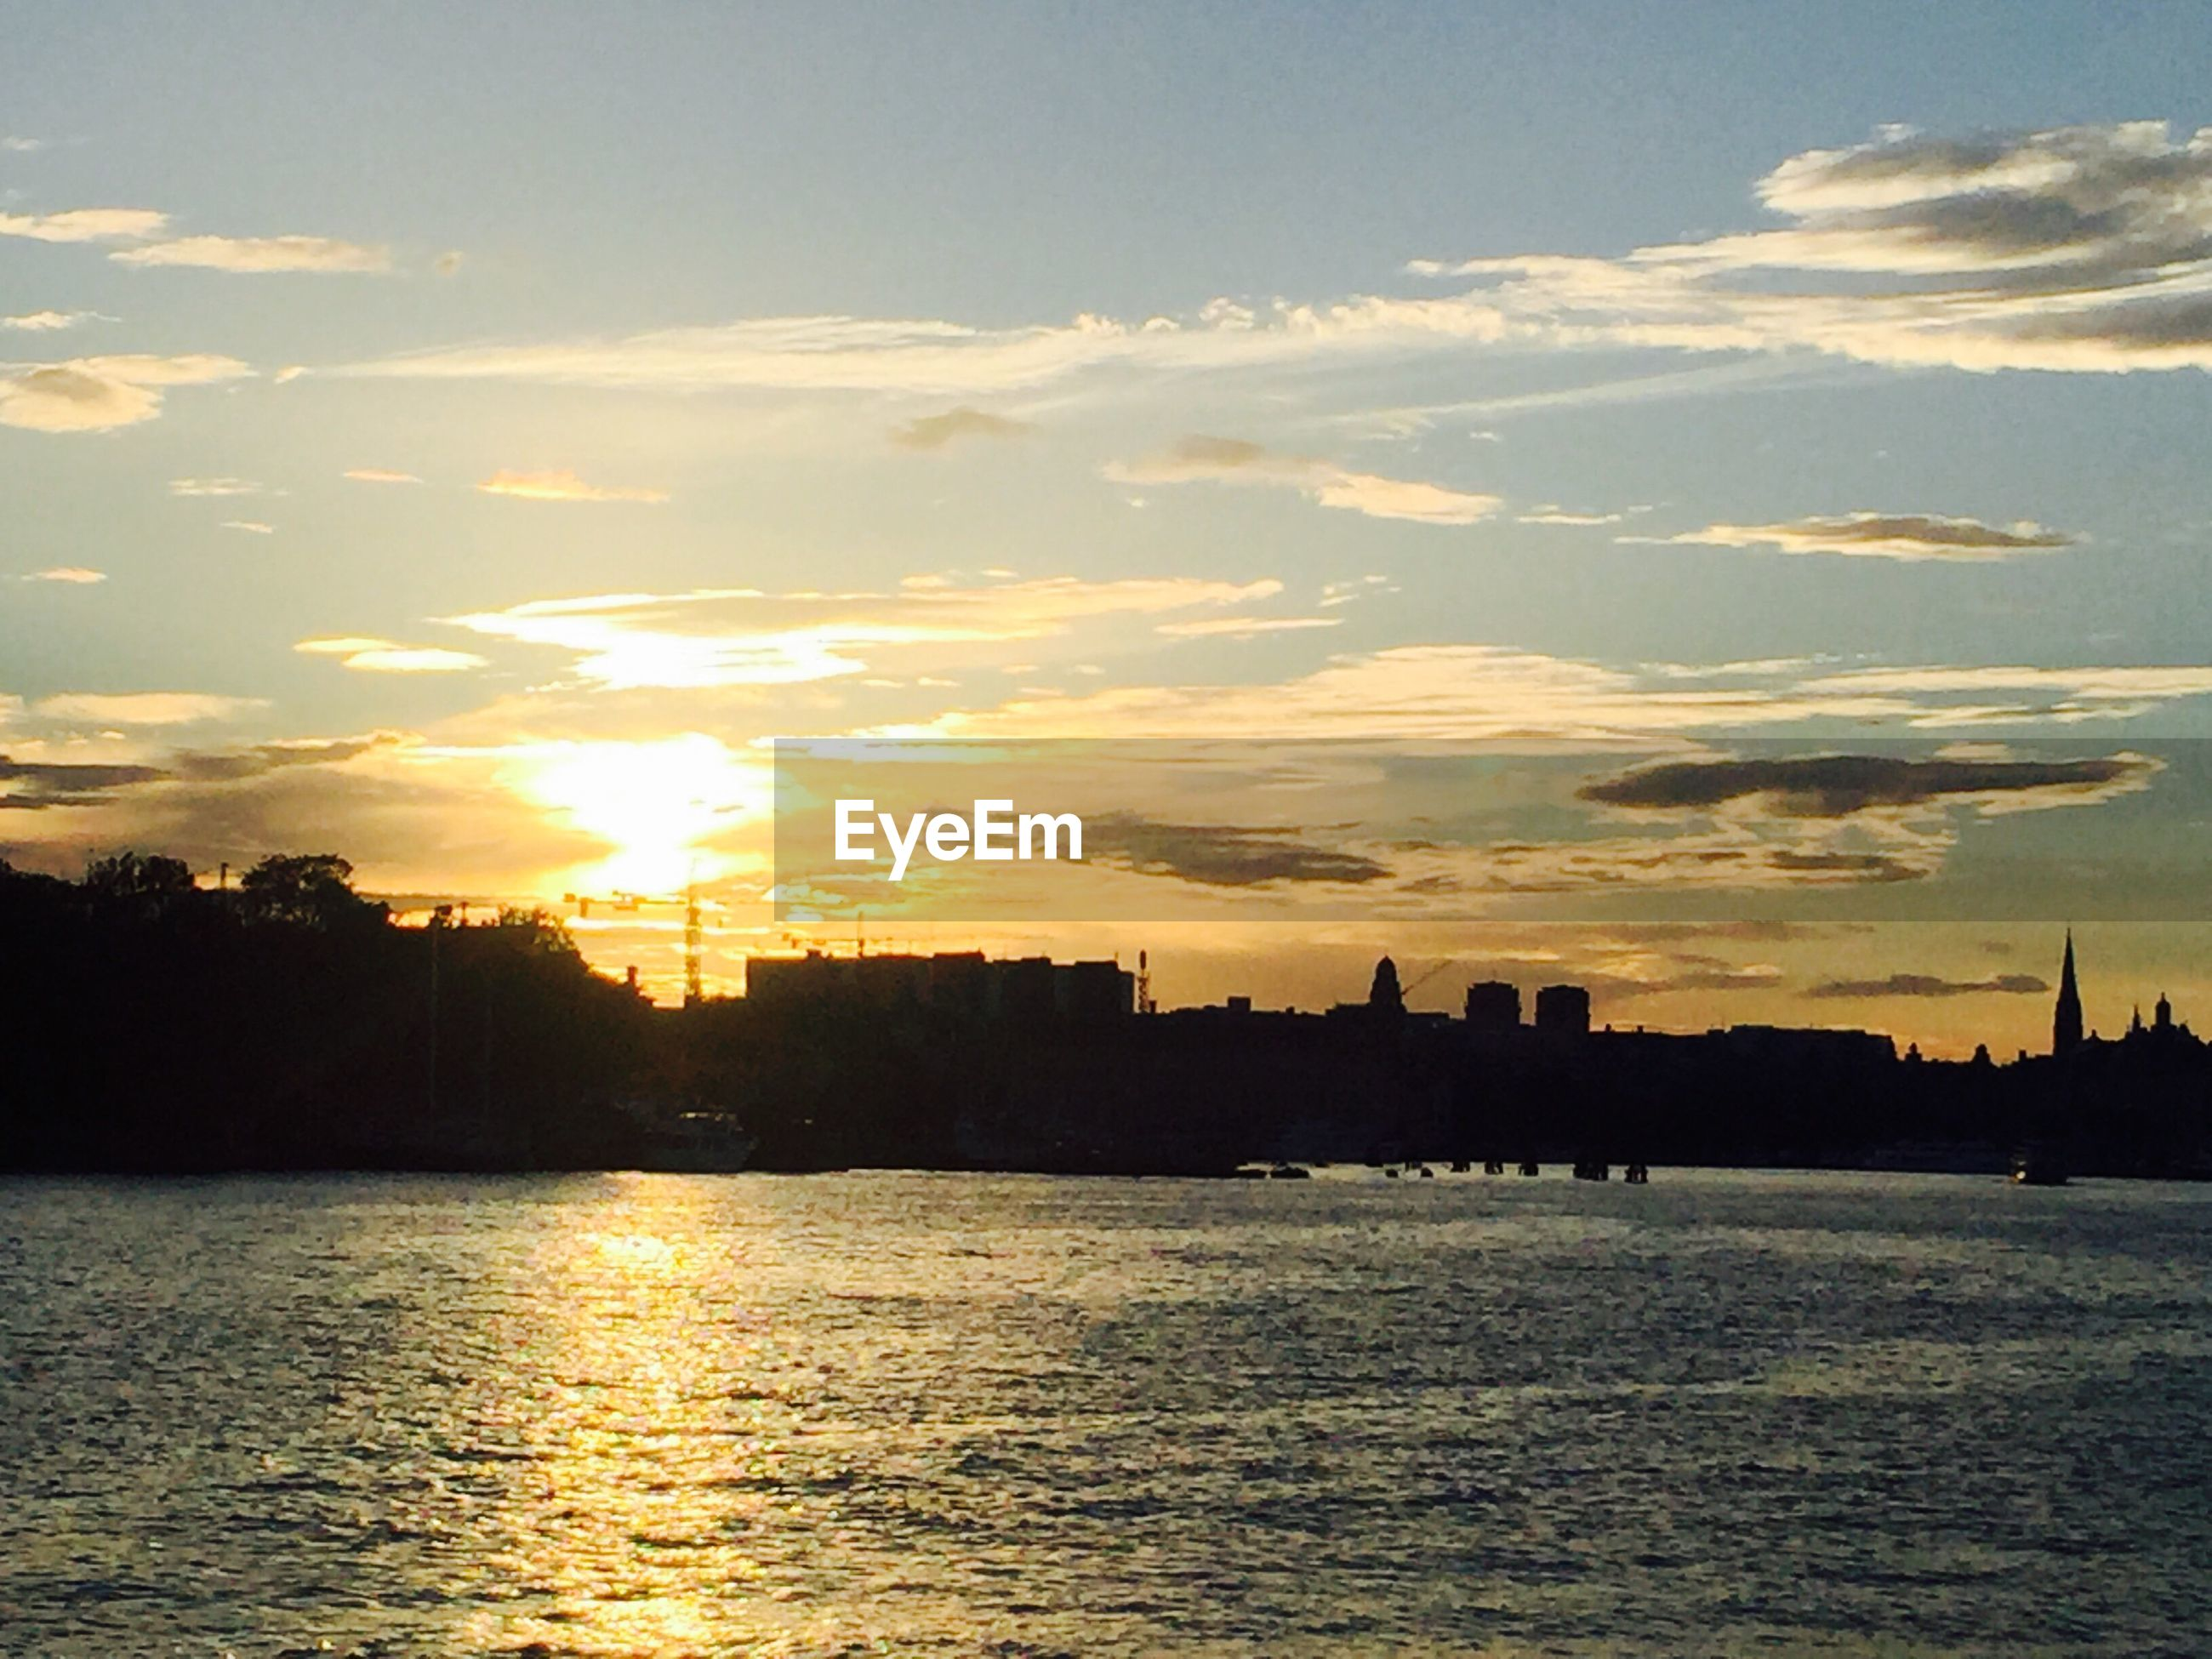 sunset, architecture, building exterior, water, built structure, city, waterfront, silhouette, river, sky, scenics, cityscape, cloud - sky, sun, cloud, skyline, urban skyline, calm, sea, beauty in nature, outdoors, nature, tranquility, tranquil scene, distant, no people, residential district, riverbank